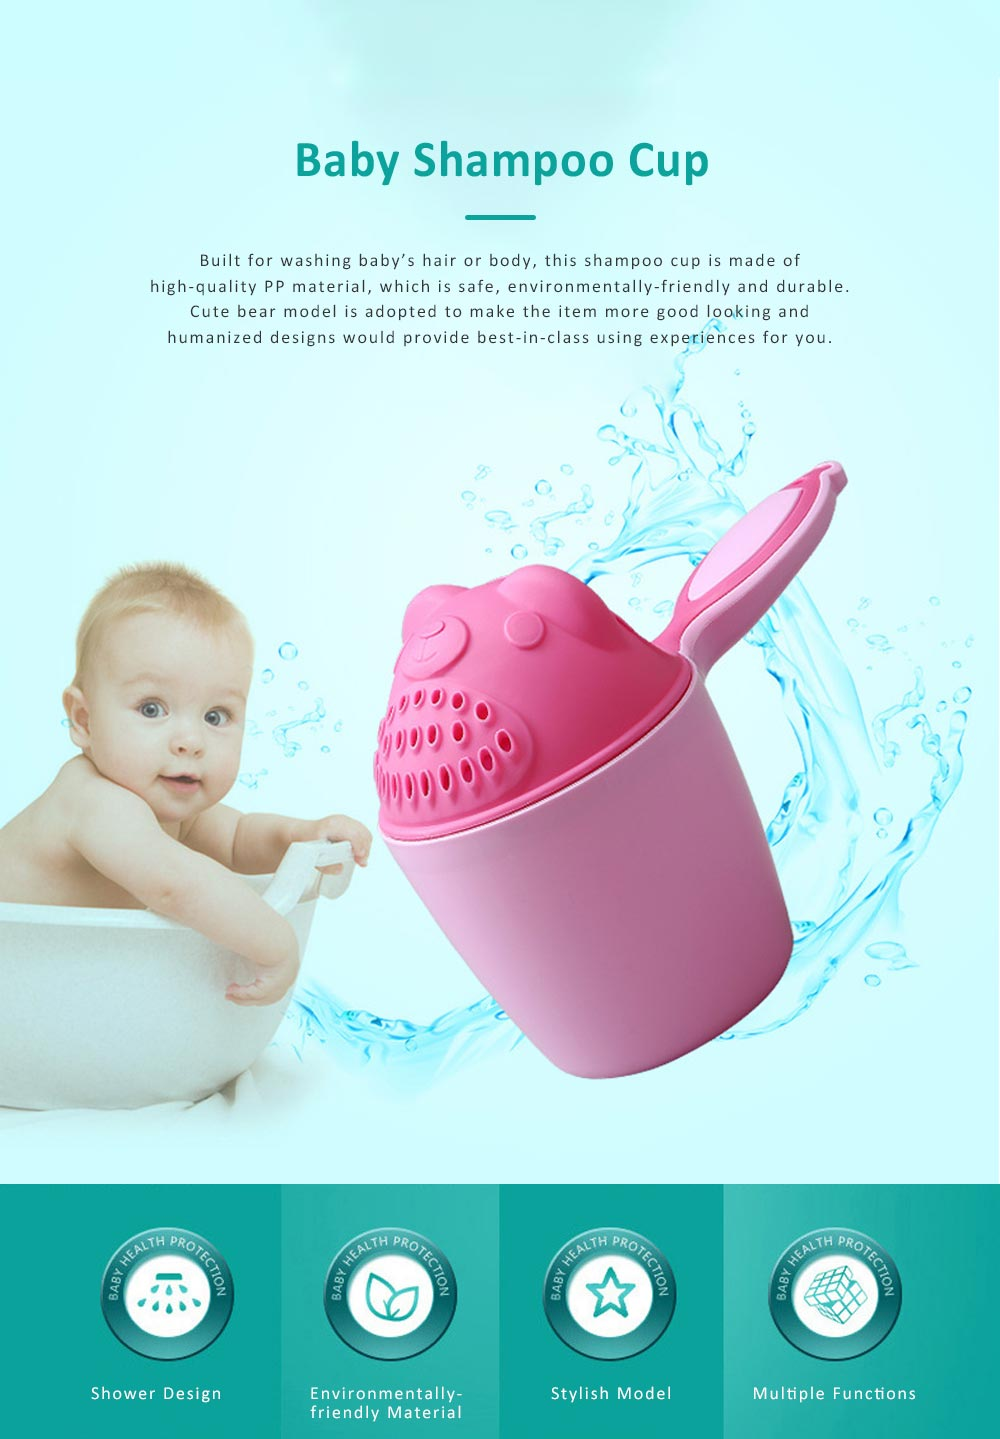 Bear Model Baby Shampoo Rinser Cup, Convenient Portable Hair Wash Bathing Flusher for Infants Shampoo Cup 0